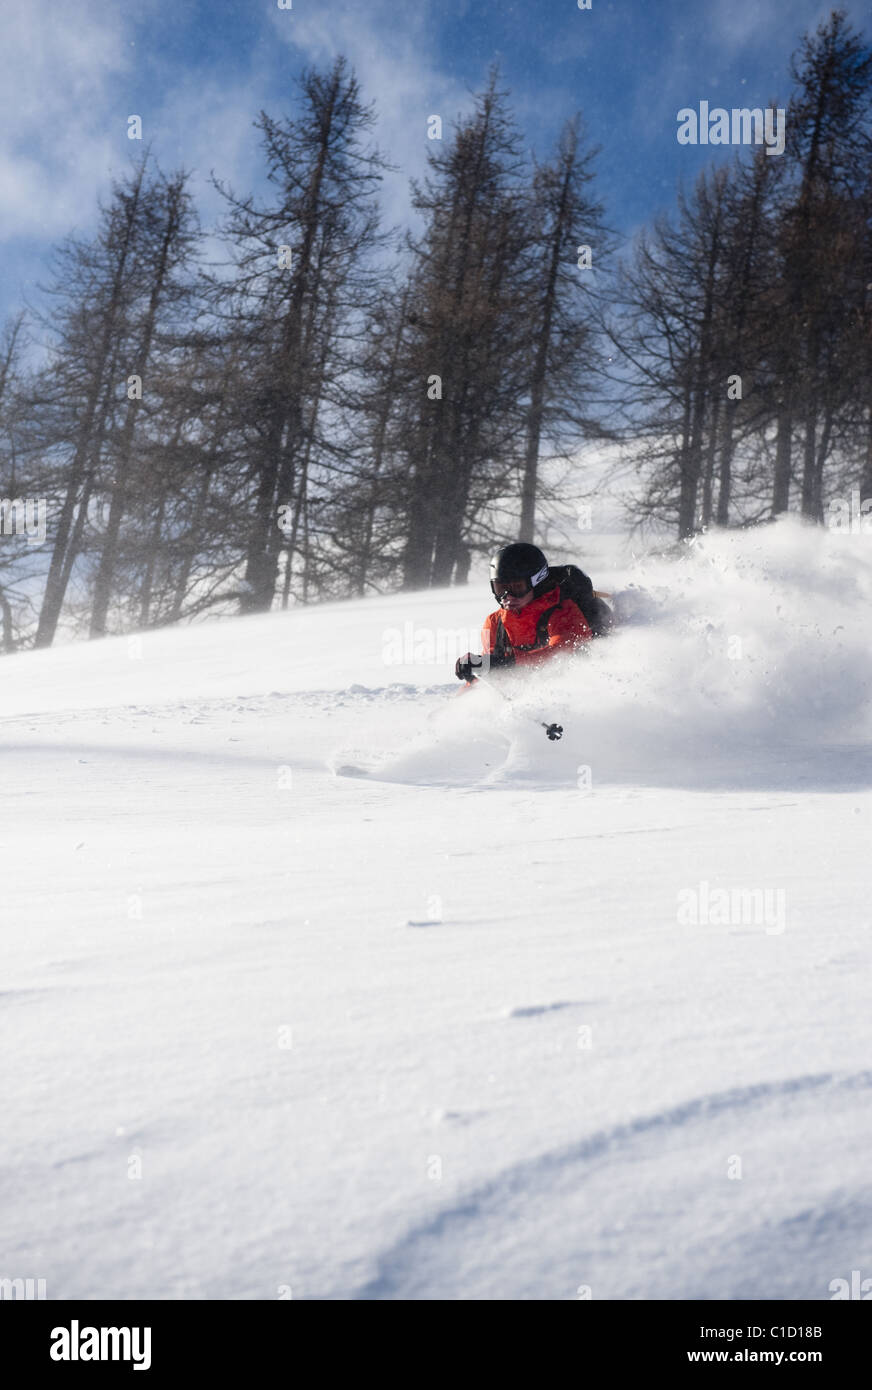 A free skier making a powdery turn in Argentera, Maritime Alps, Italy - Stock Image